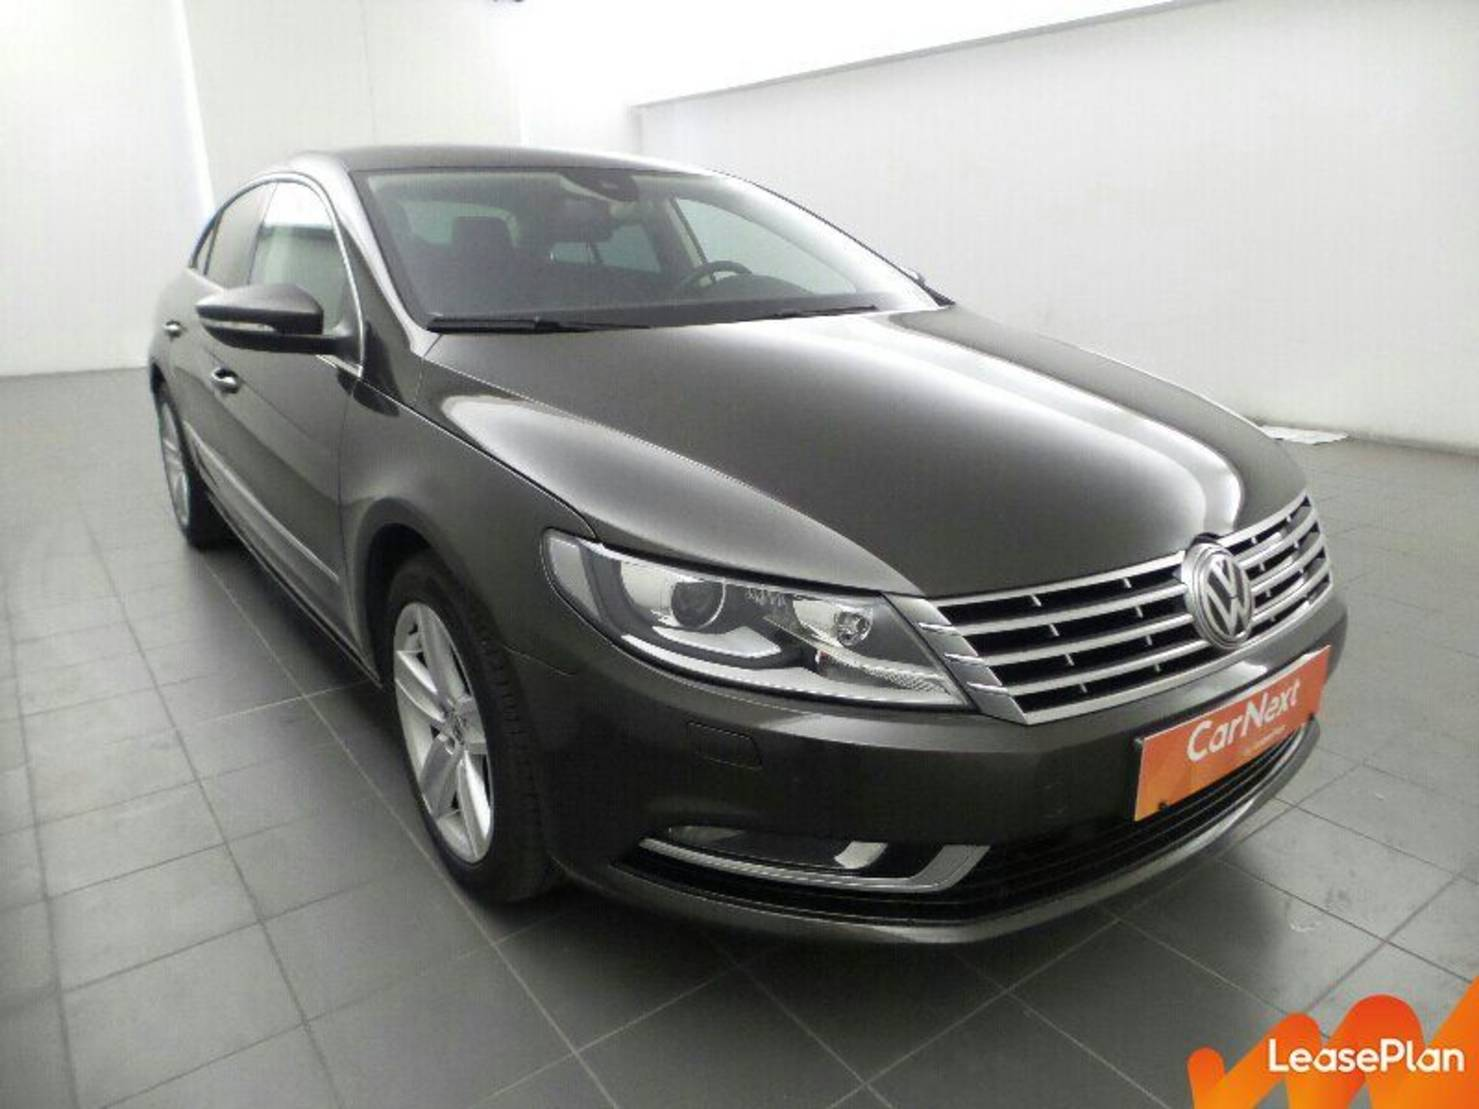 Volkswagen CC 2.0 TDI 150 FAP BlueMotion Technology, Carat detail2